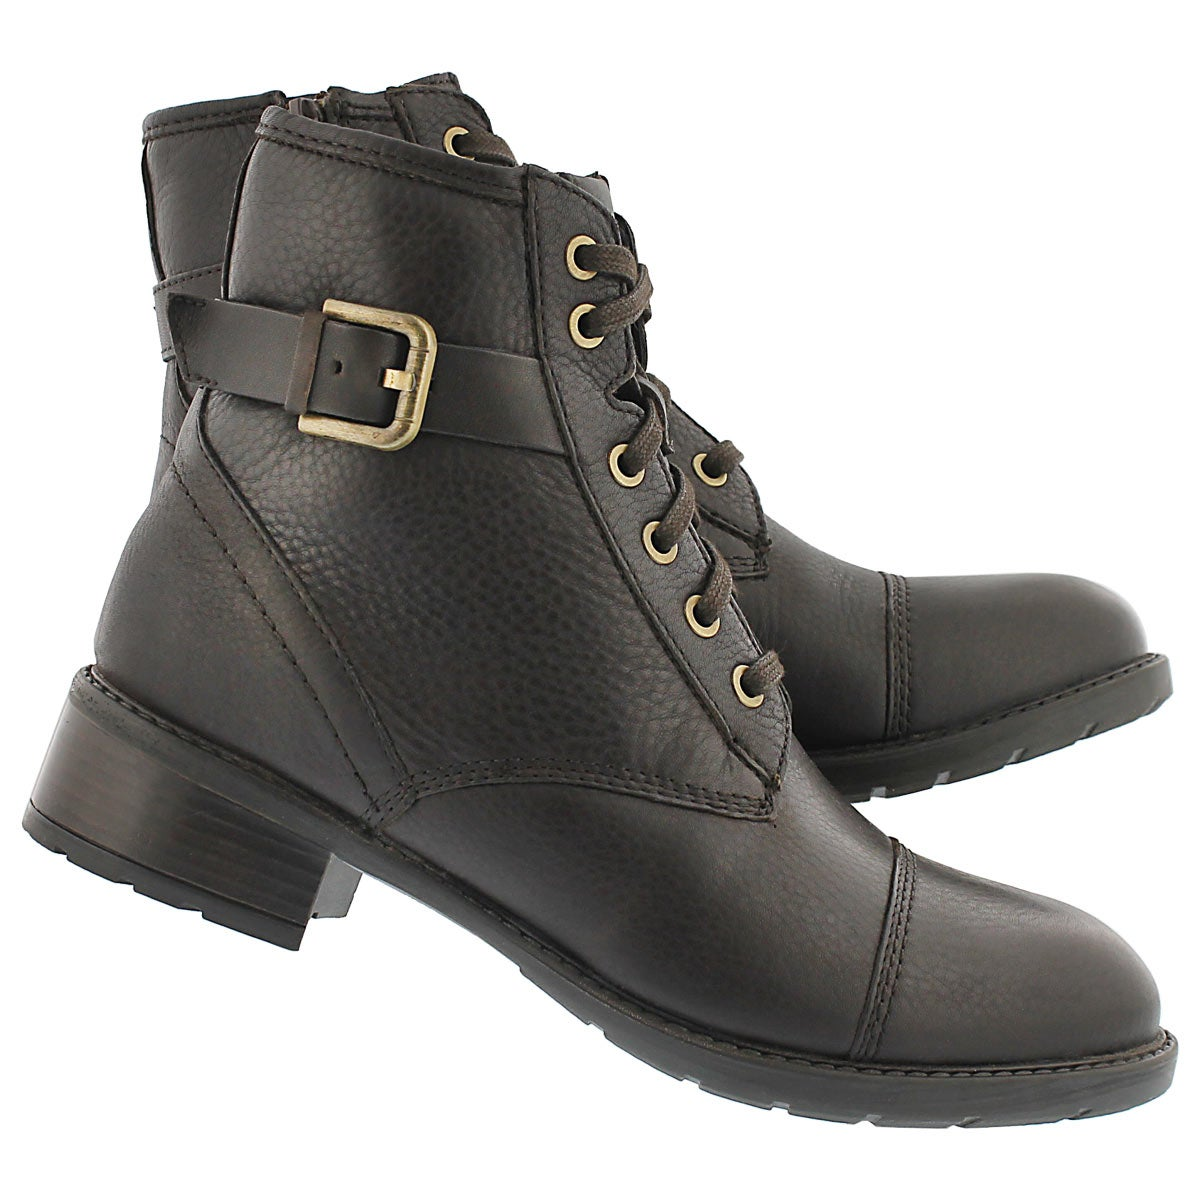 Lds Swansea Ledge dk brown combat boot